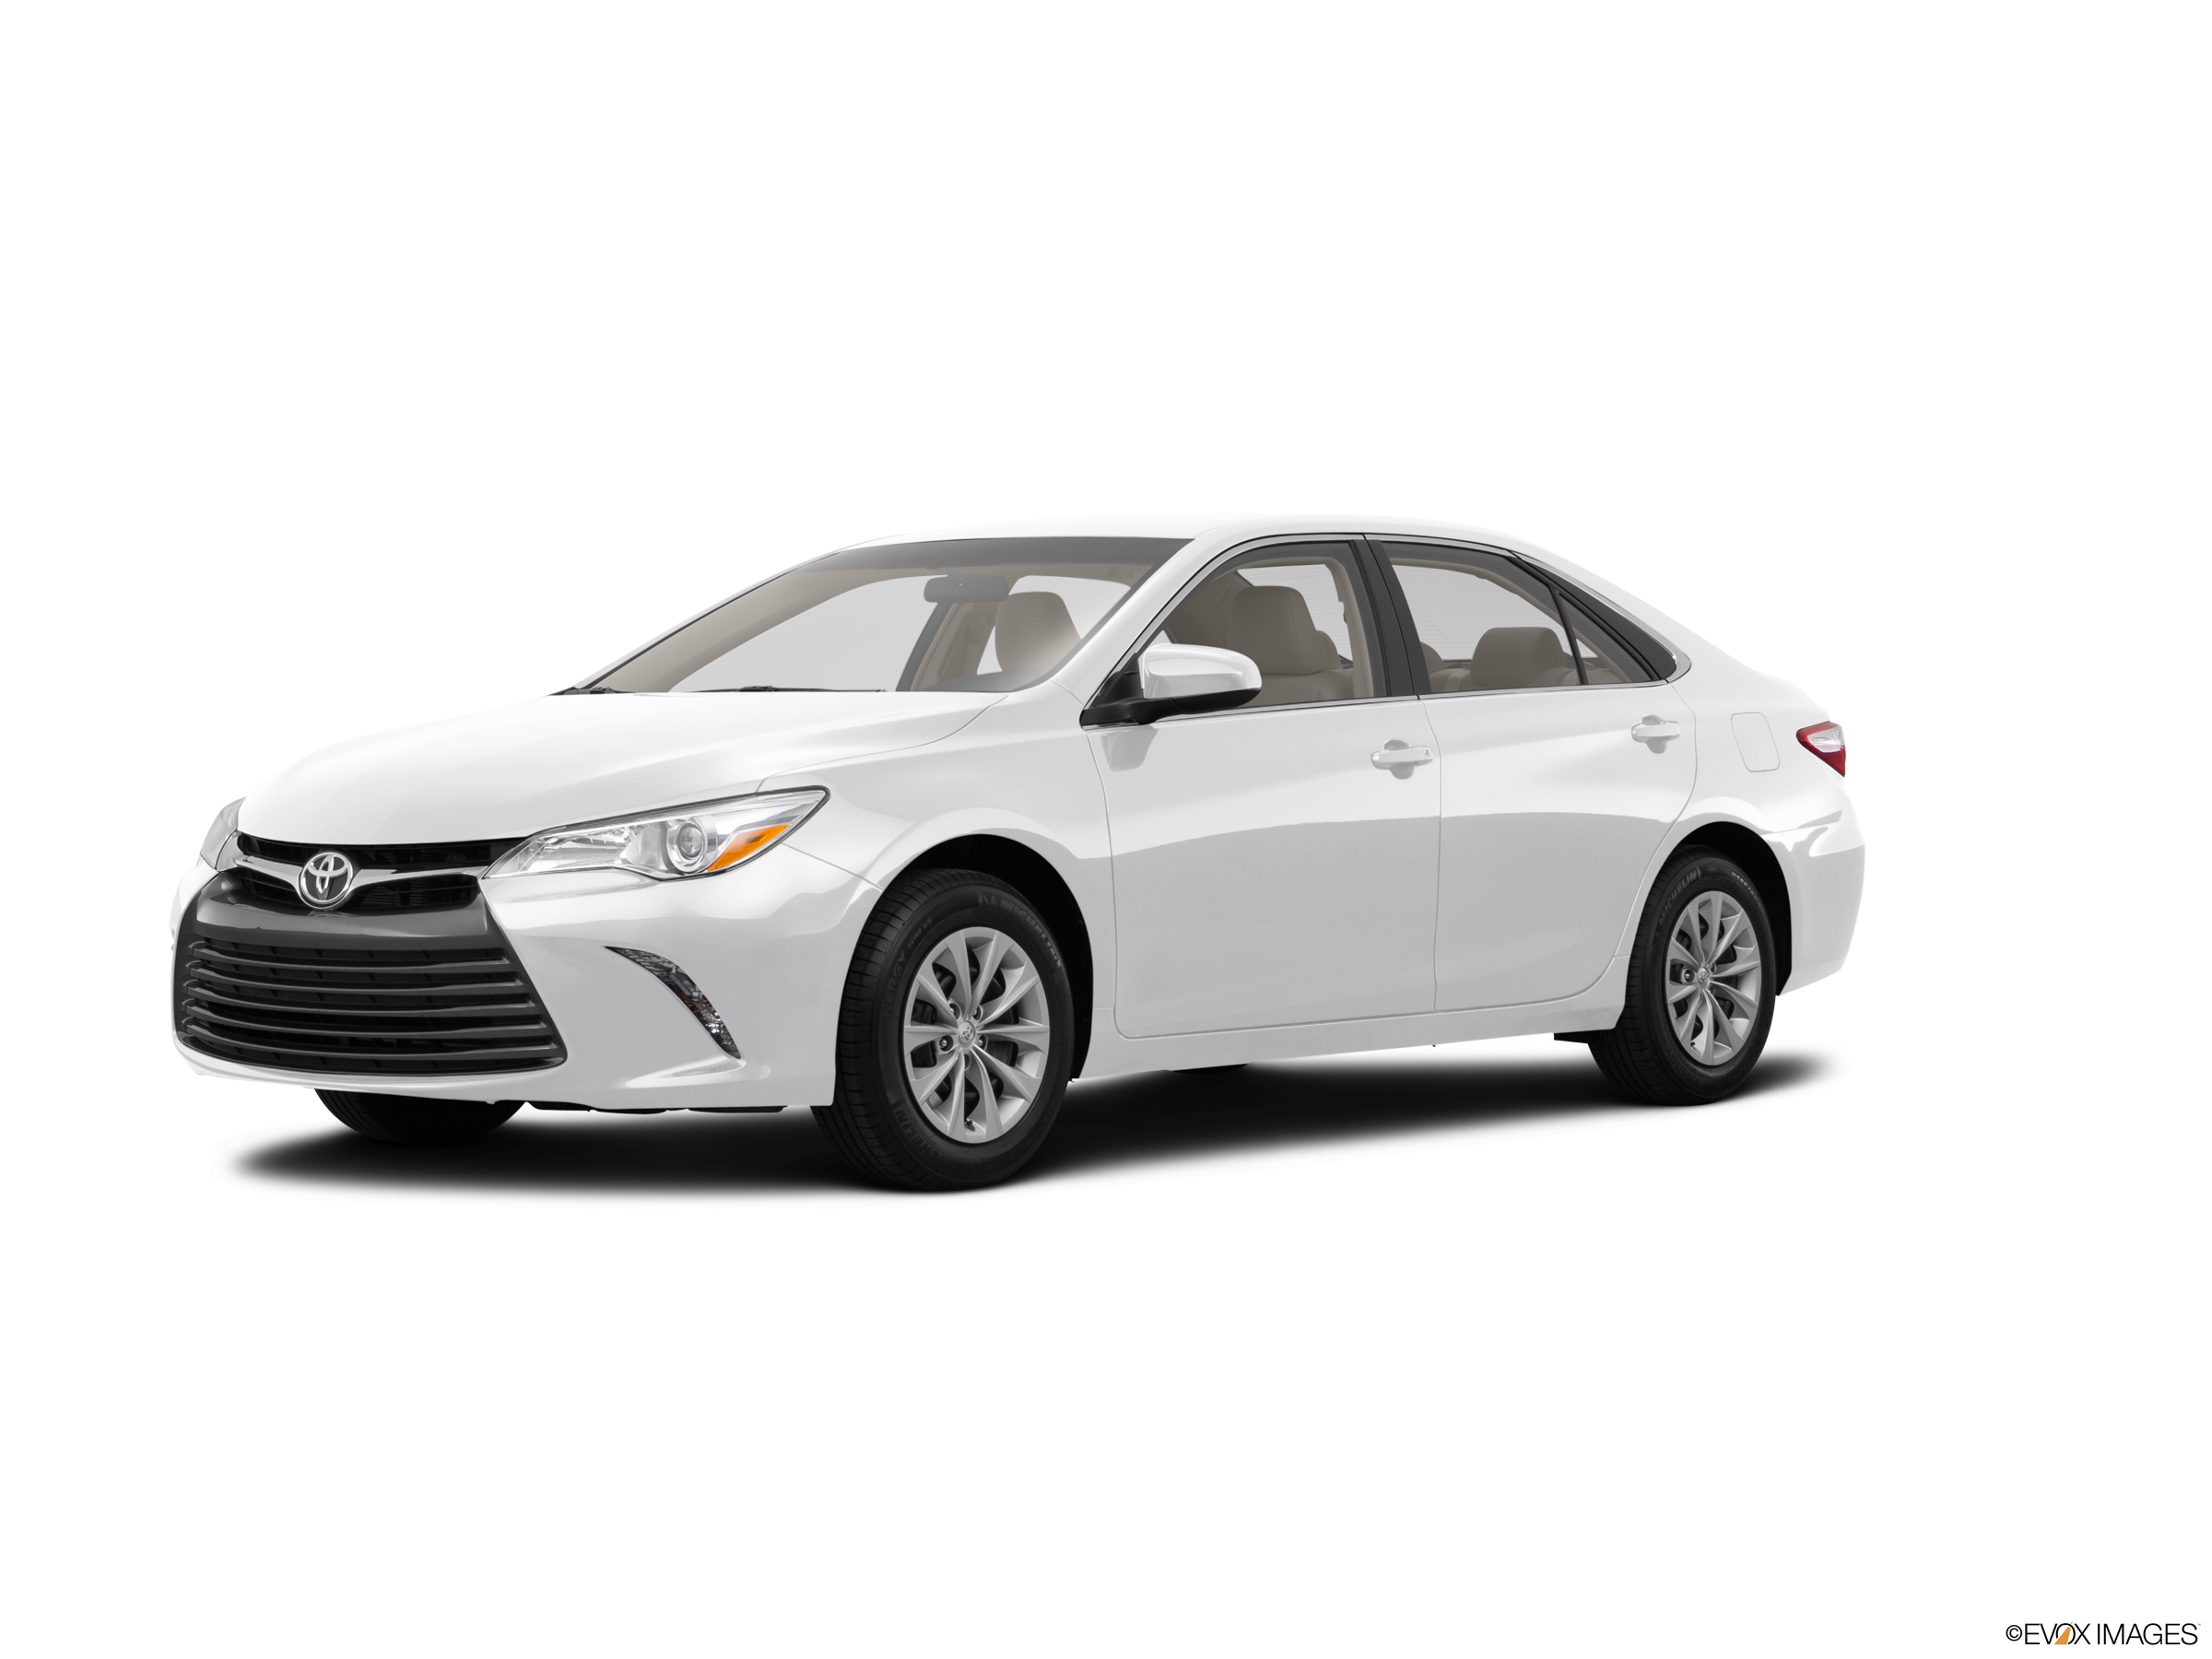 2015 Toyota Camry Values Cars For Sale Kelley Blue Book